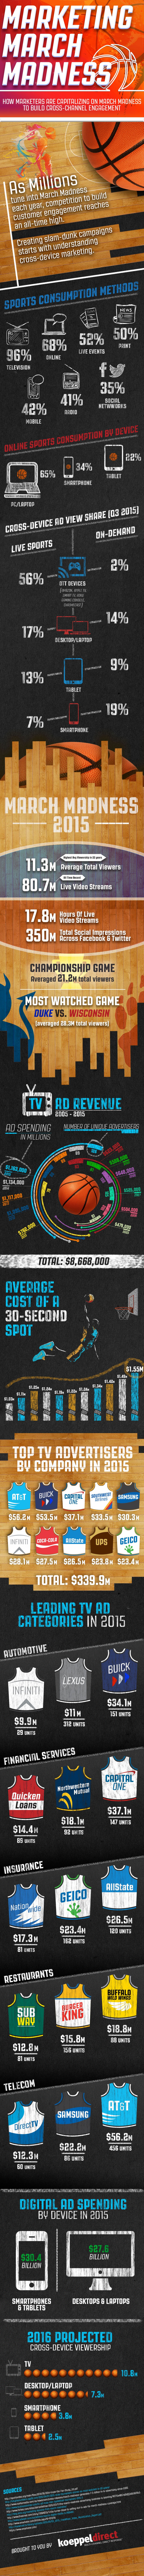 March Madness Marketing Stats & Viewership Trends